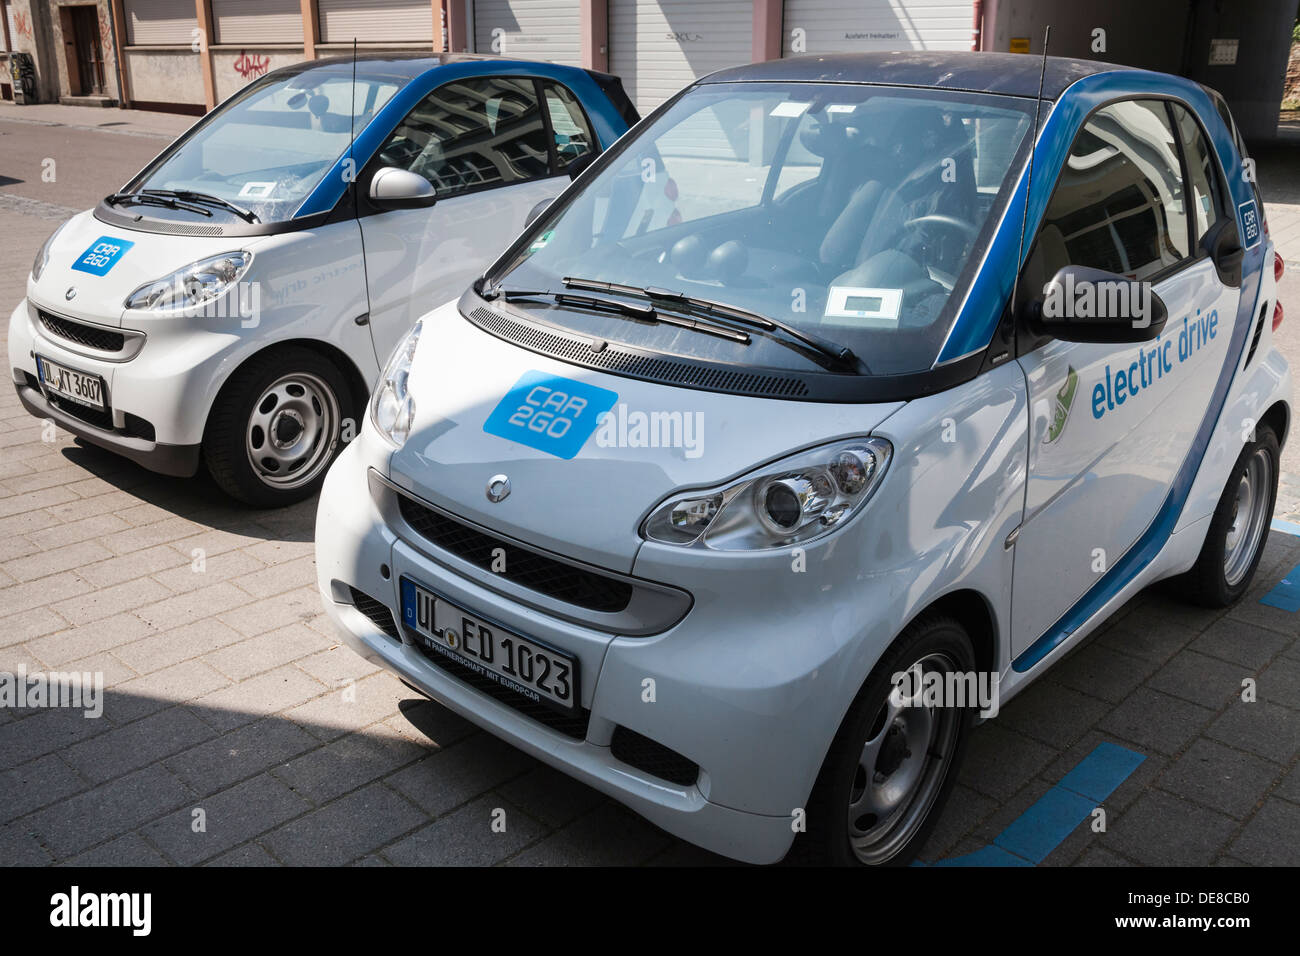 Germany, Baden Wuerttemberg, Ulm, Conventional and electric car - Stock Image